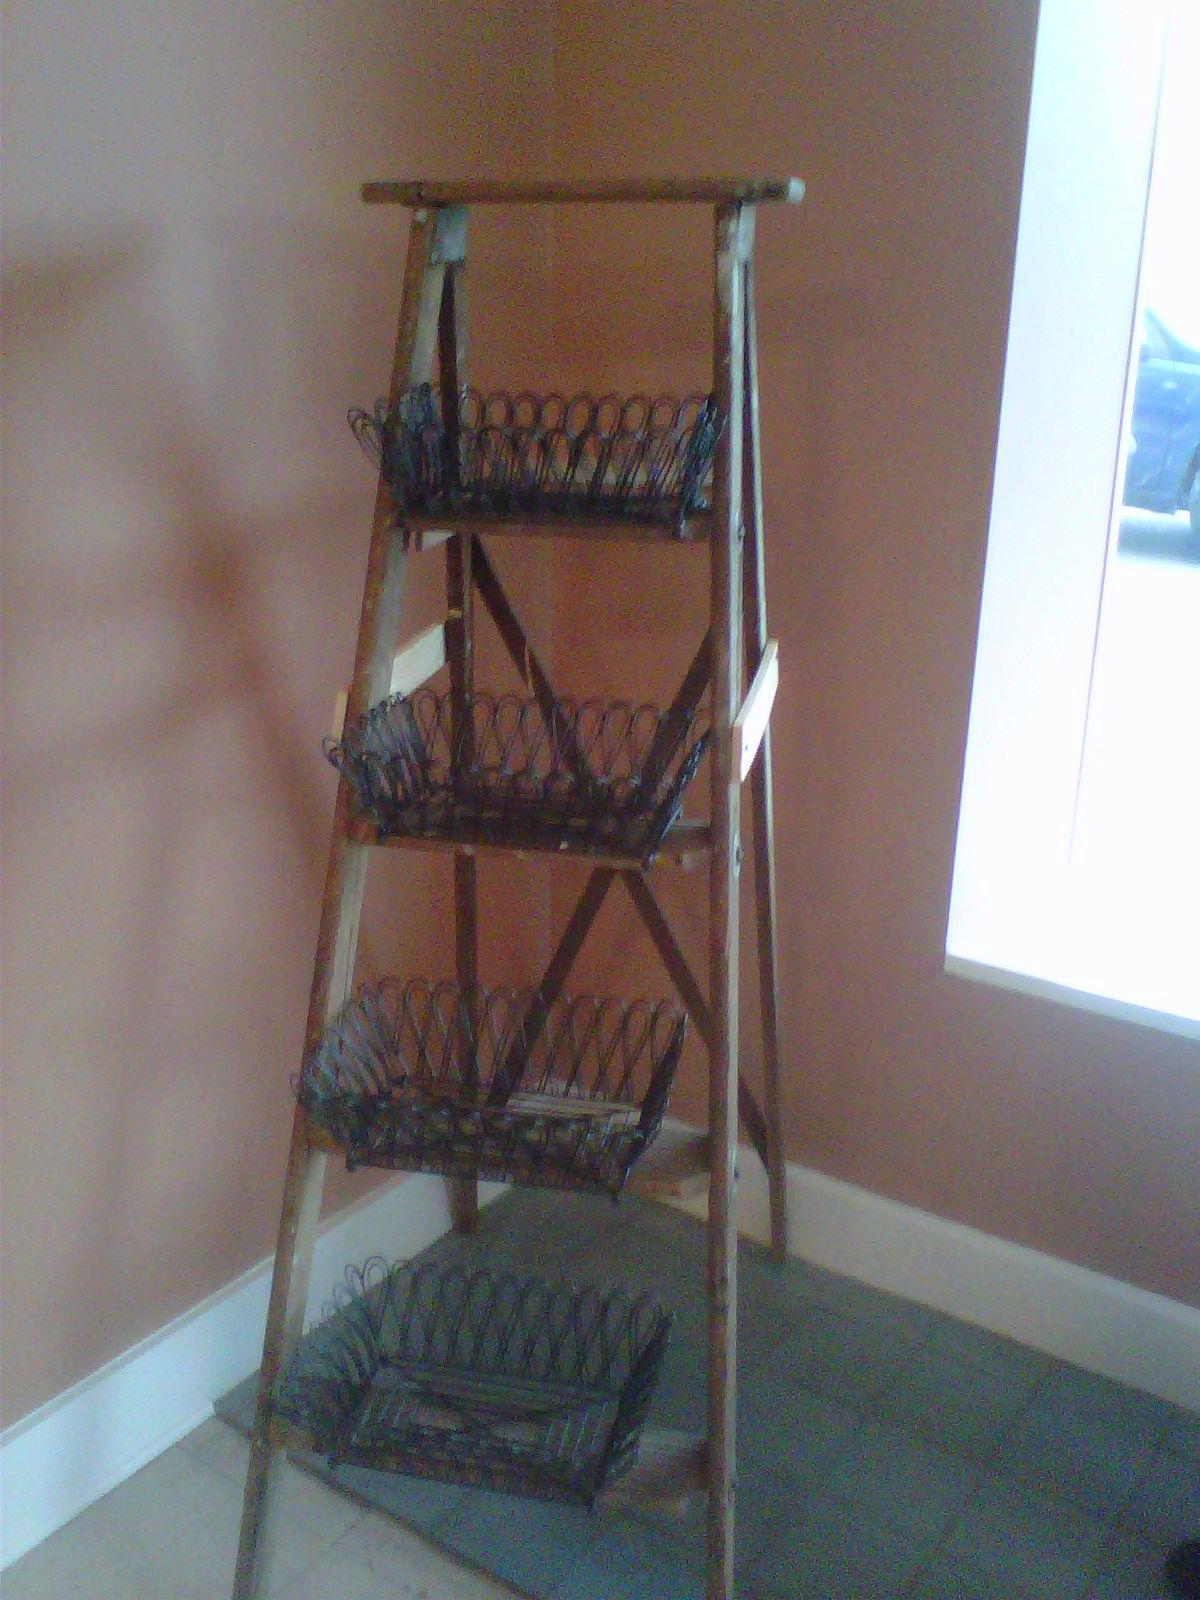 Repurposed Old Ladder New Display For My Store Lovin It Craft Booth Displays Craft Fairs Booth Craft Show Displays